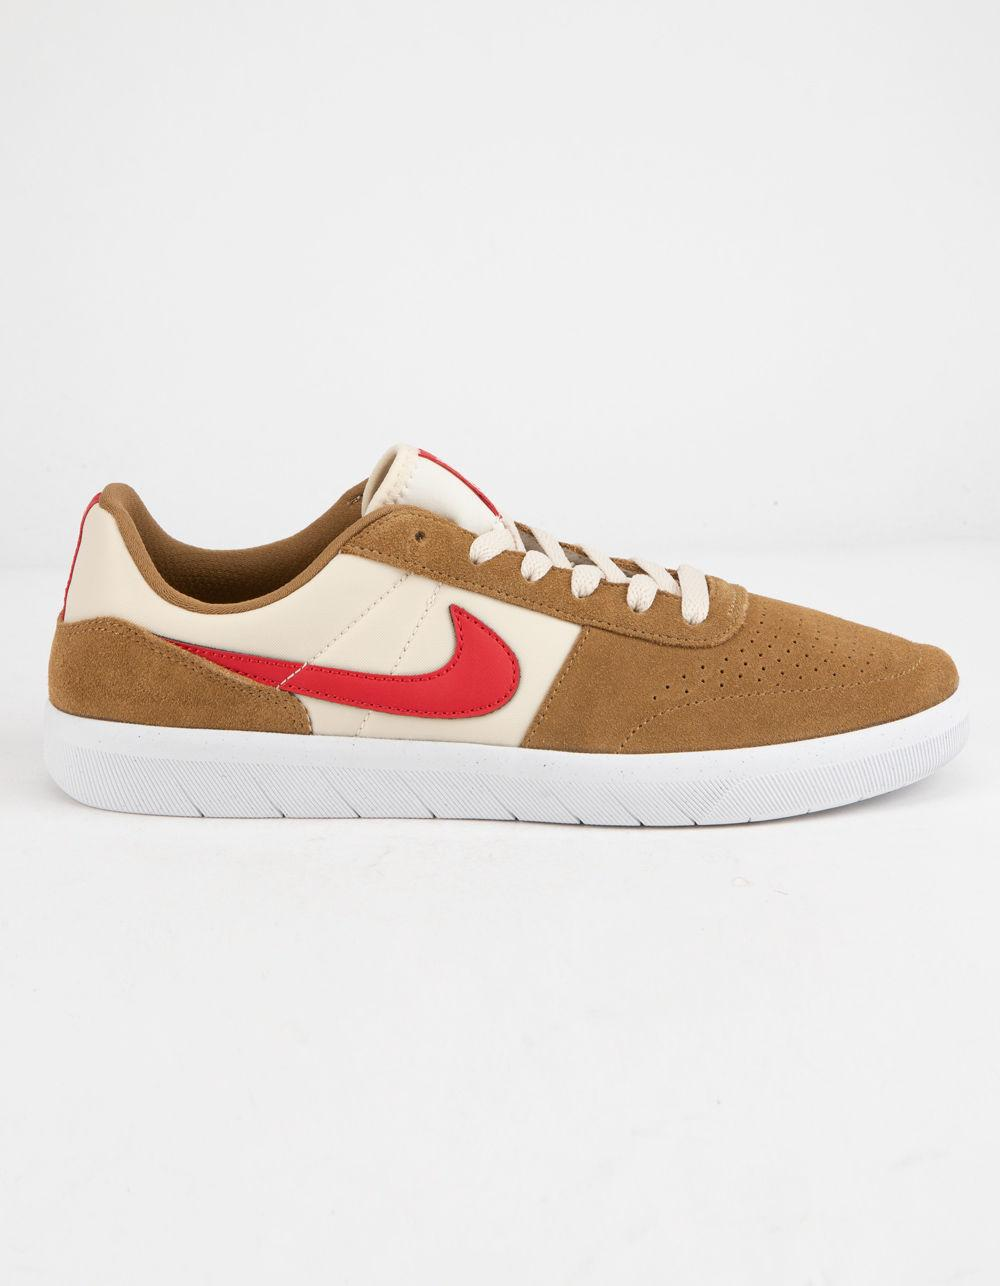 45f1f73d Lyst - Nike Team Classic Golden Beige & University Red Mens Shoes ...